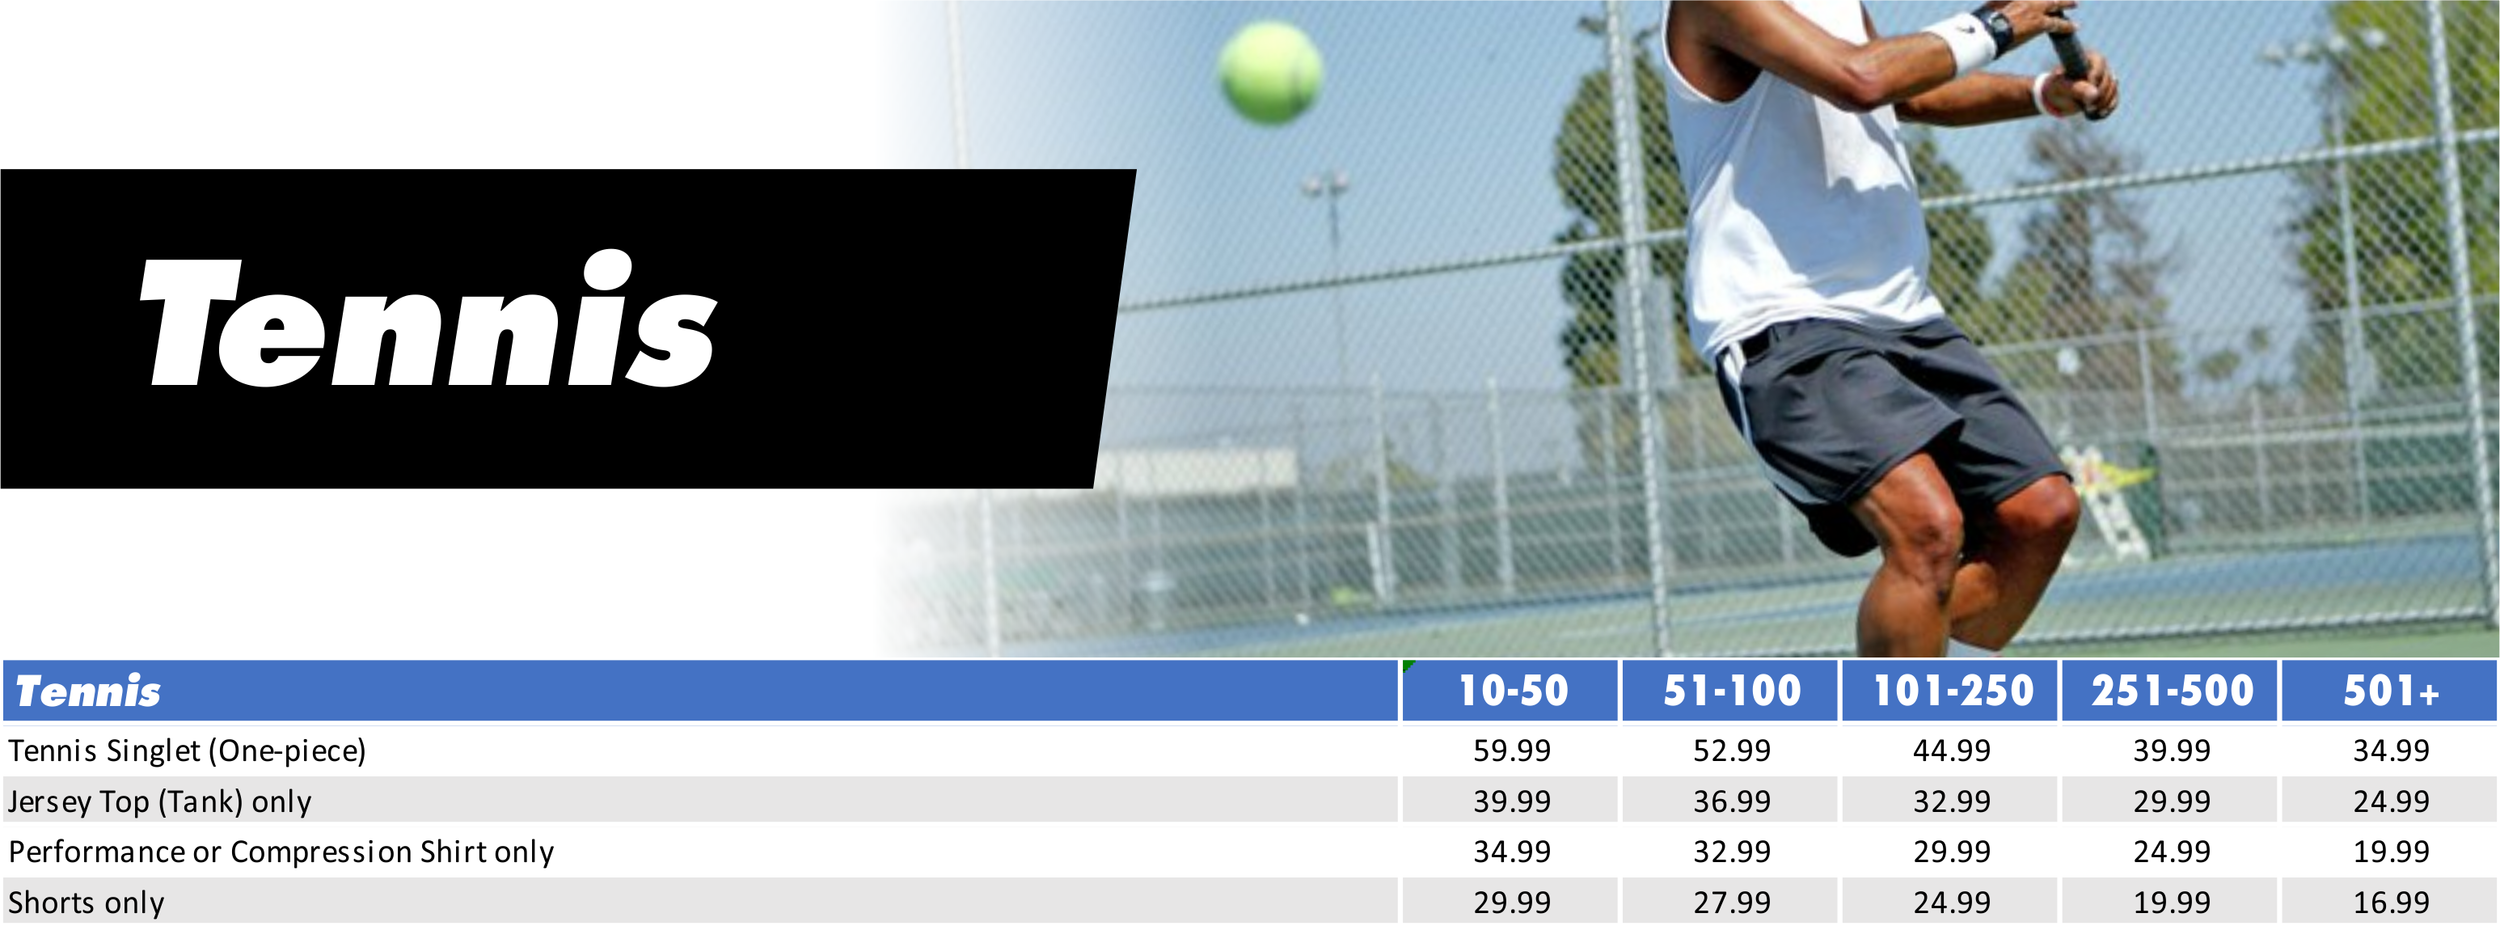 17 Tennis wooterapparel pricing.png